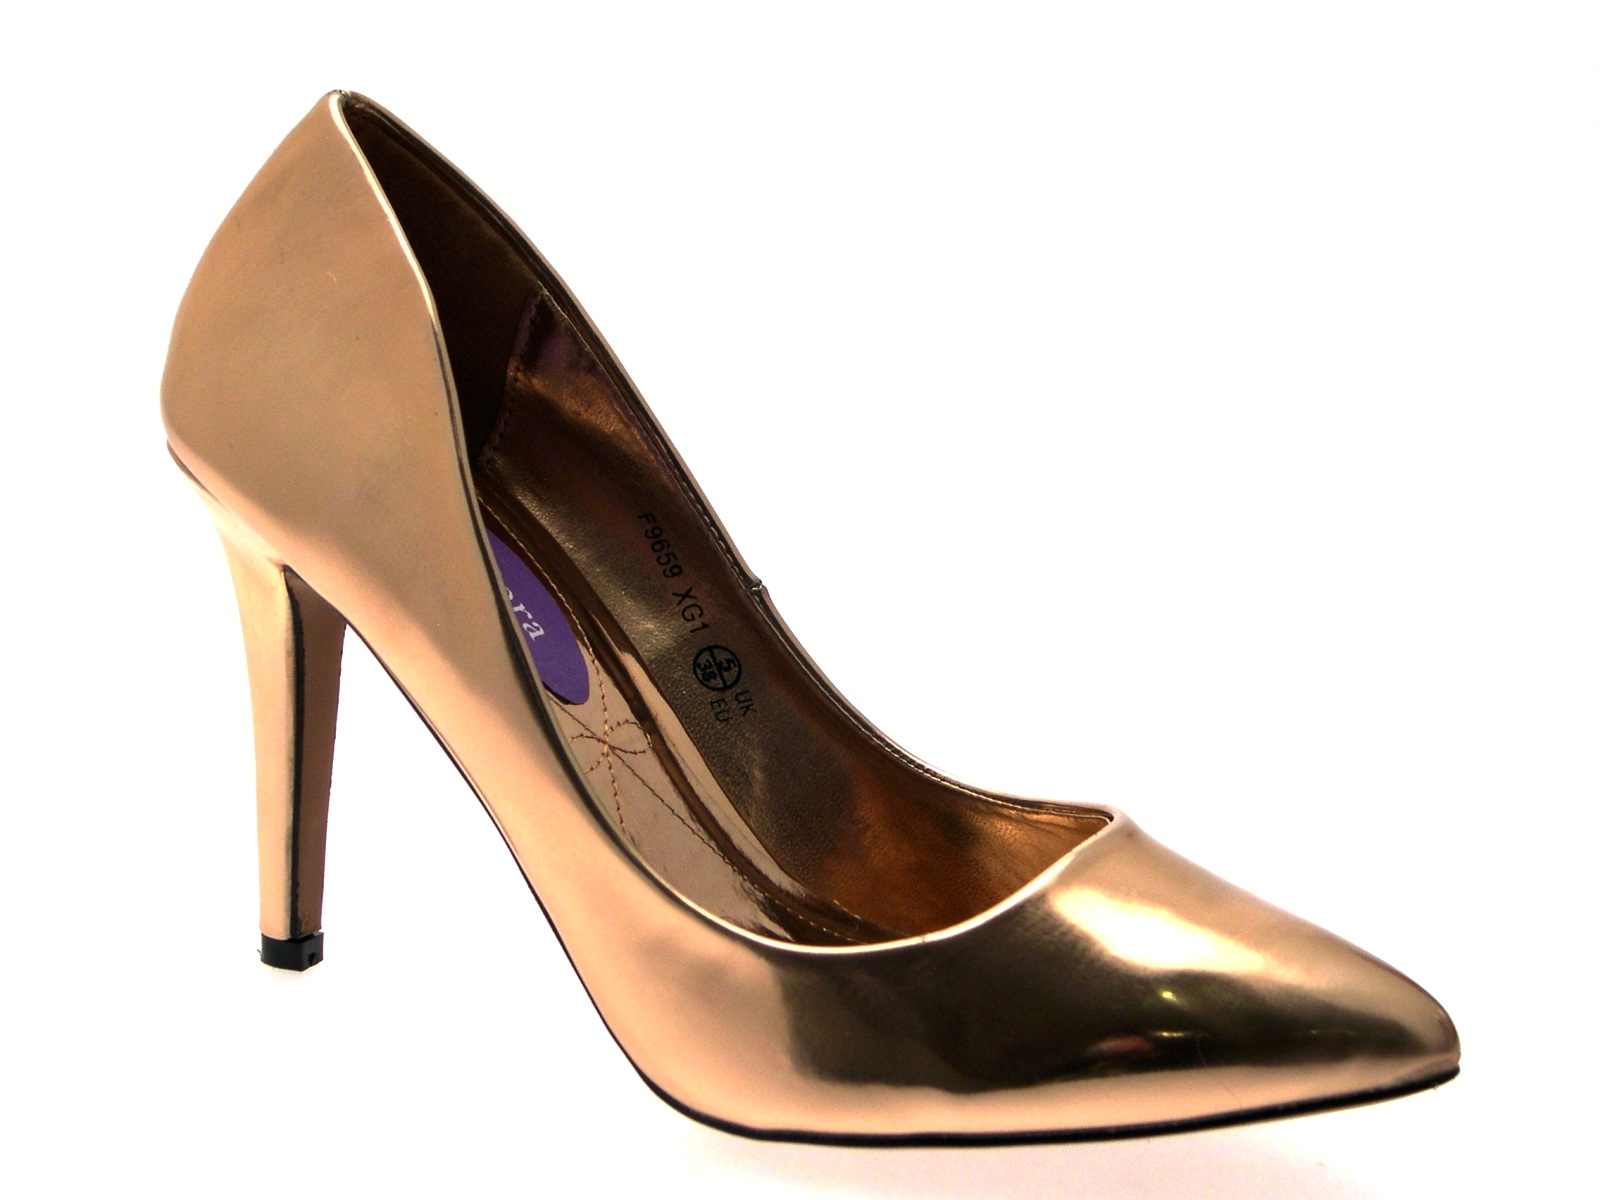 Womens-Metallic-Pointed-Toe-Court-Stiletto-High-Heels-Ladies-Work-Office-Shoes thumbnail 20